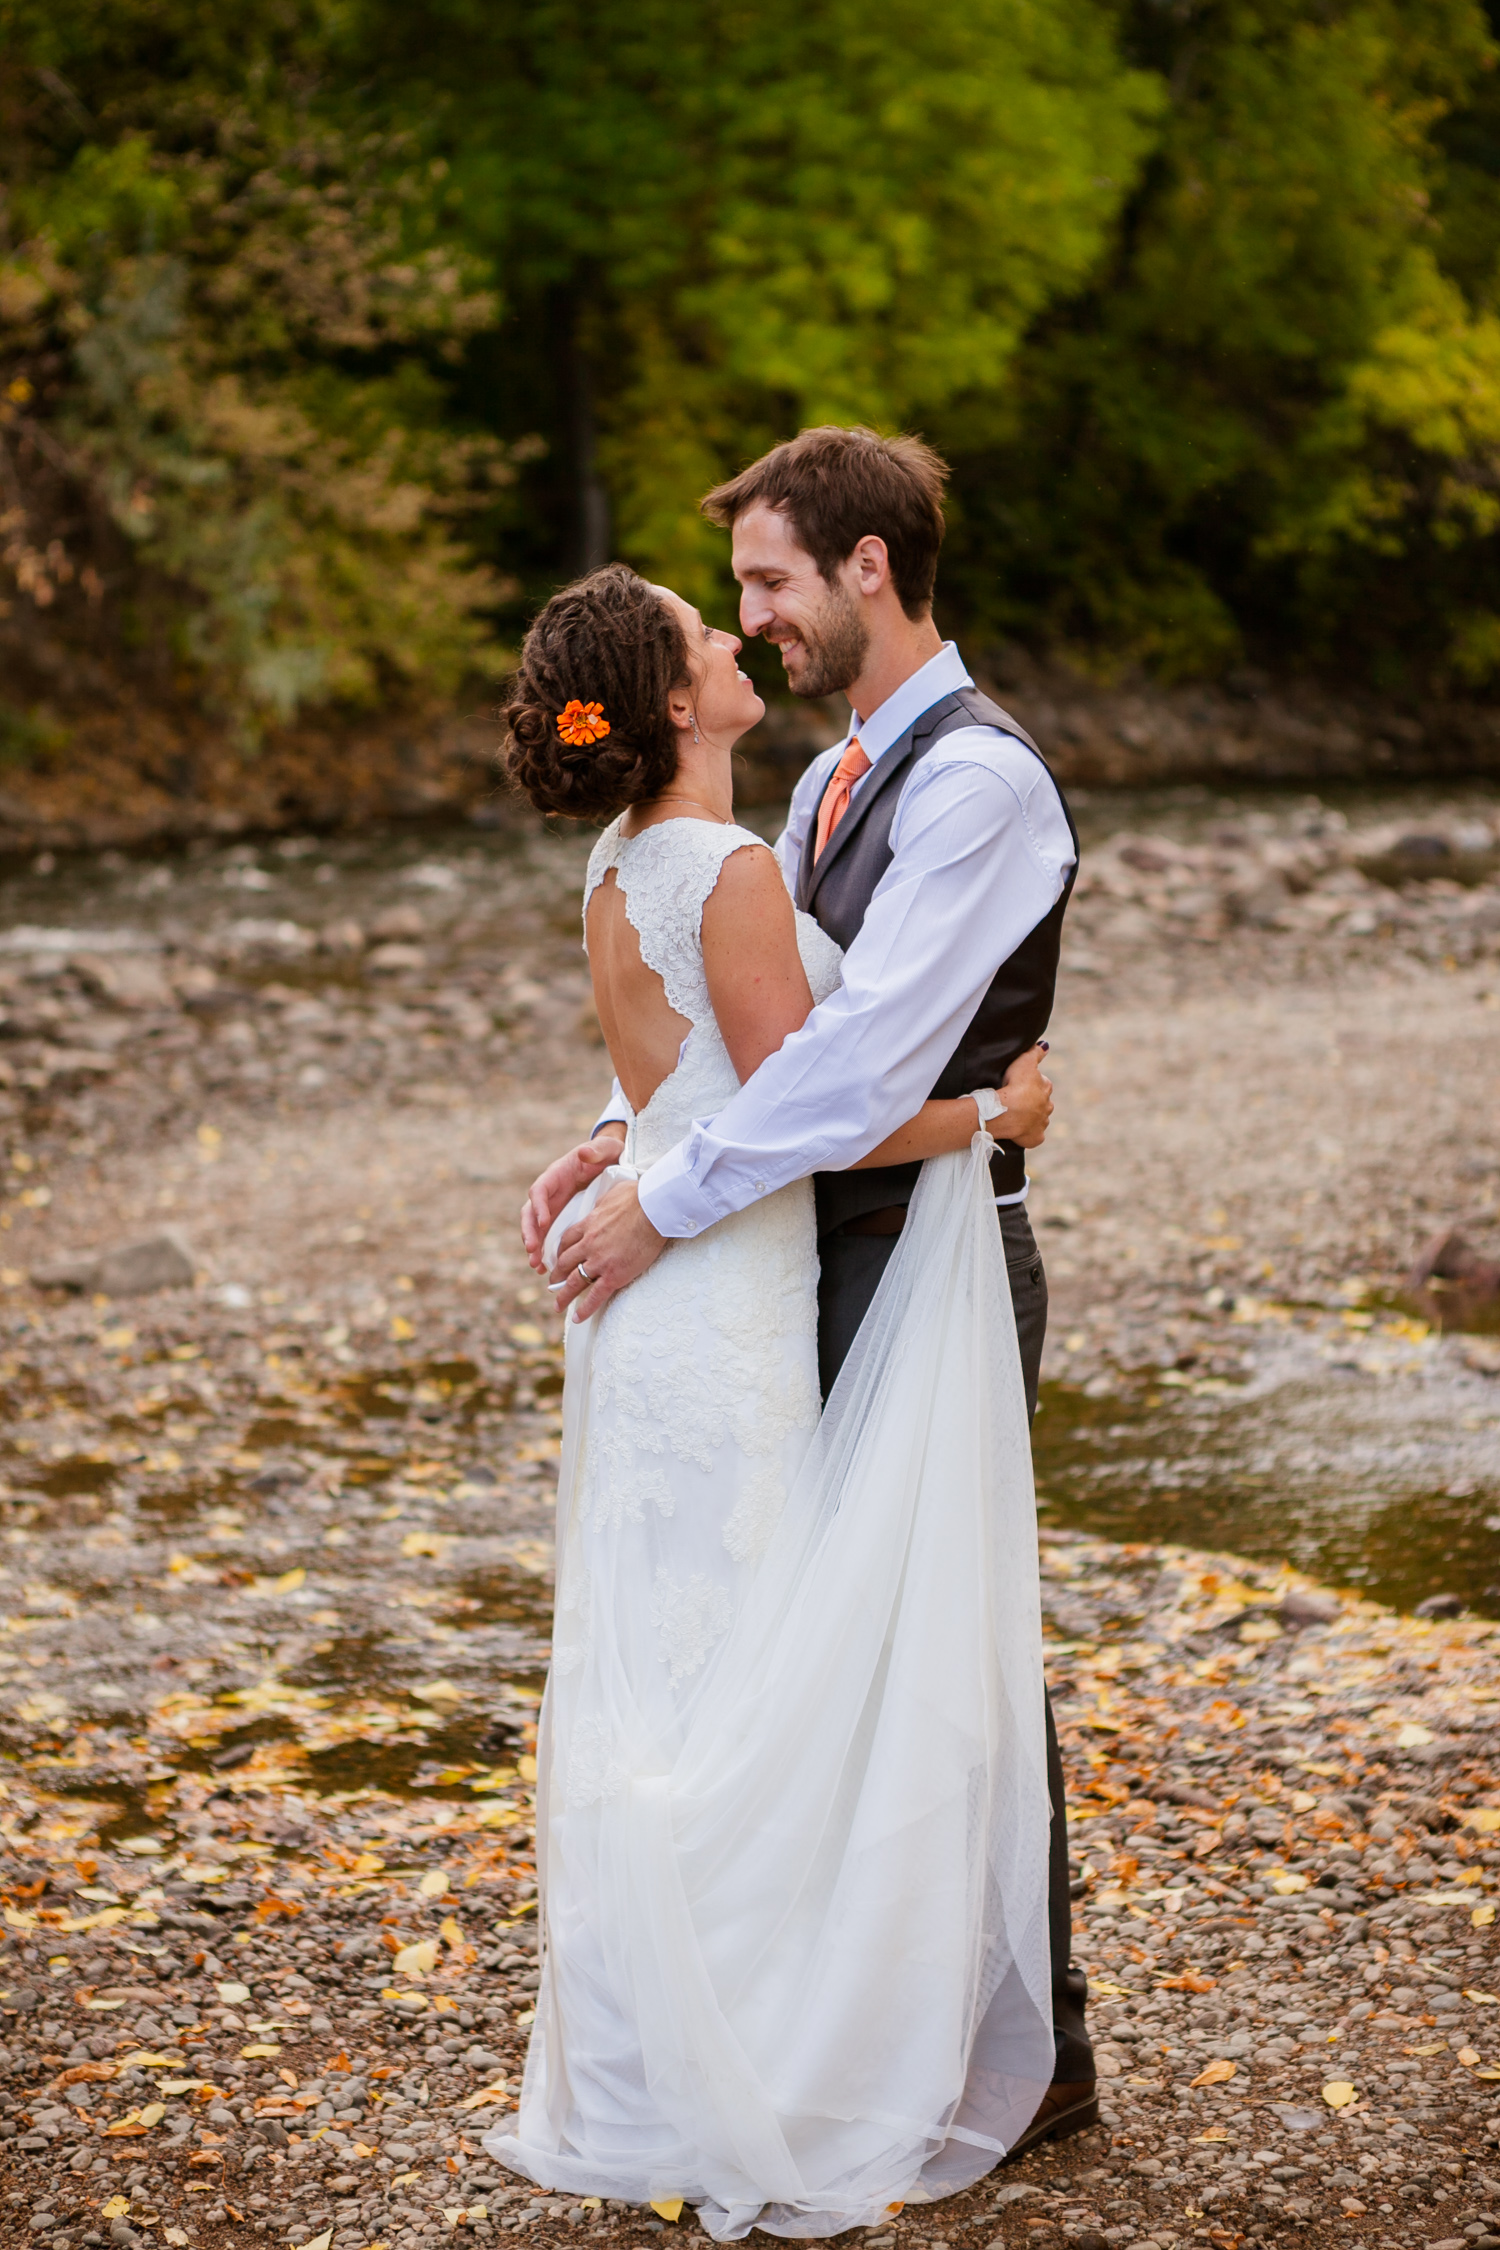 Coal_Creek_Canyon_Wedding_077.JPG